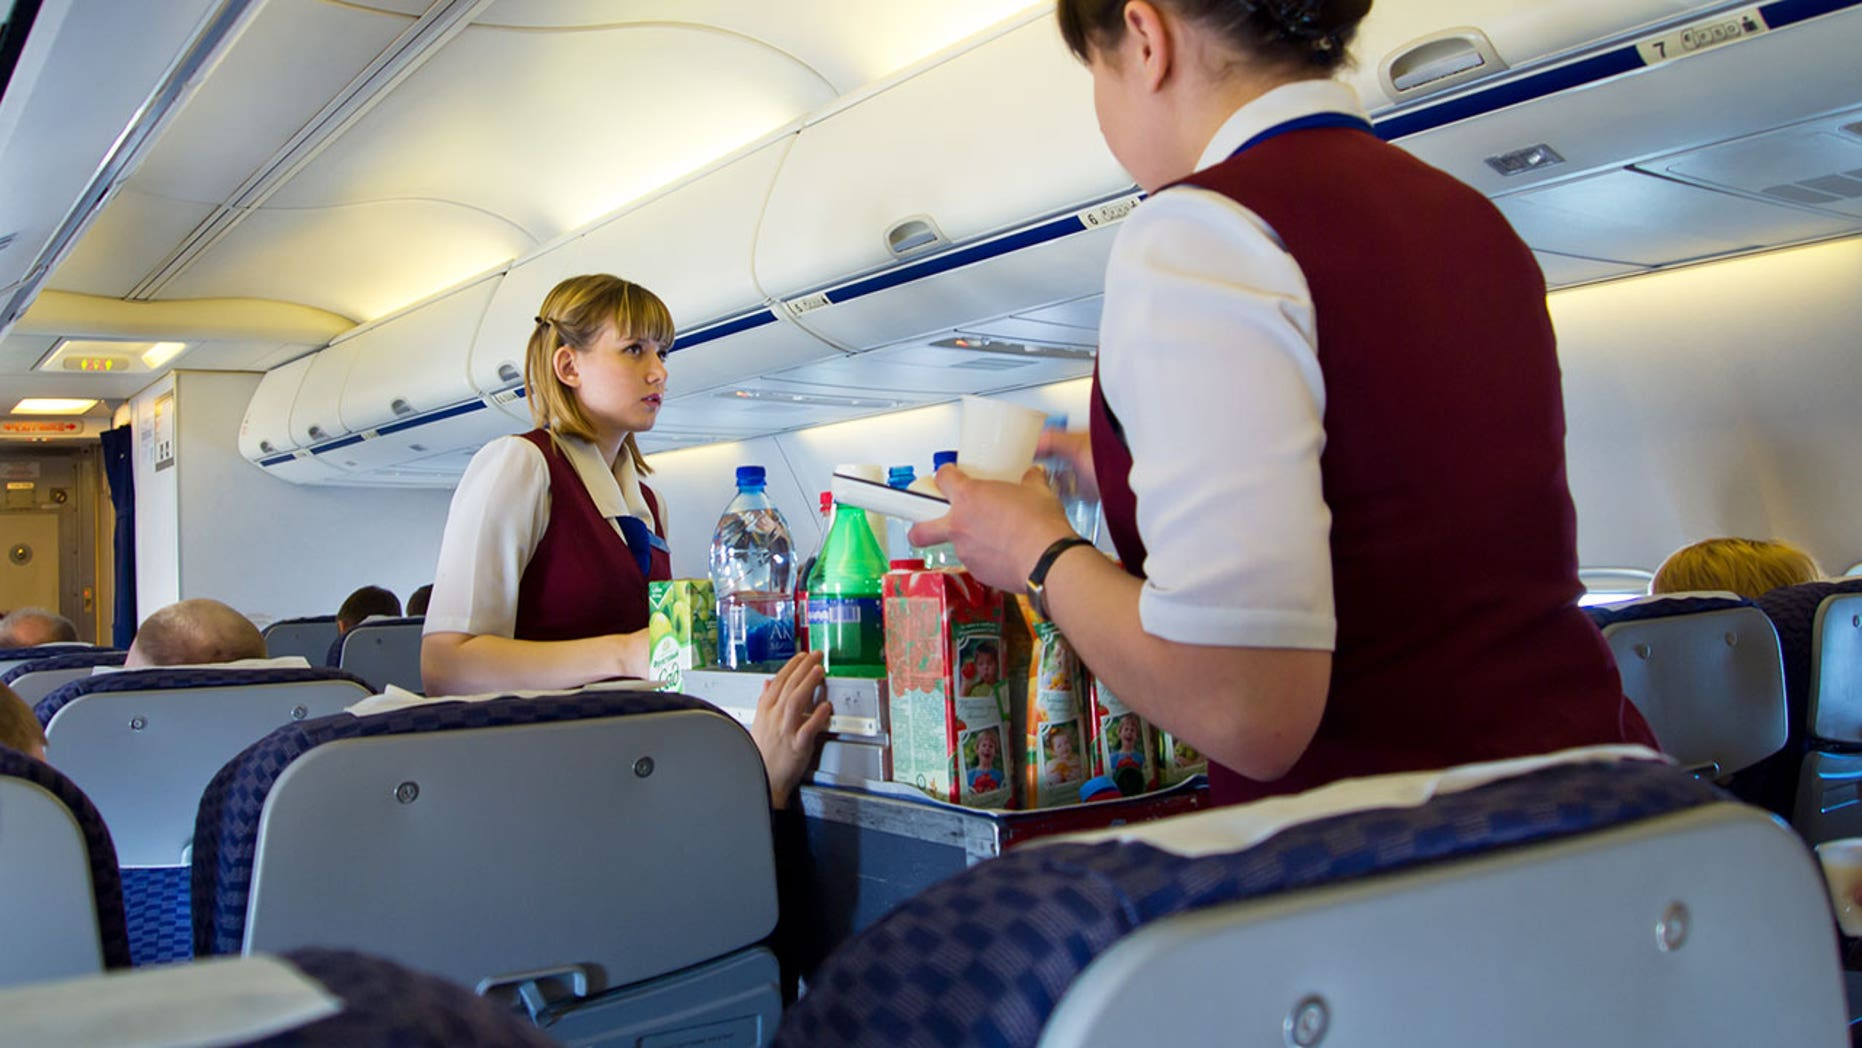 Maybe get a soda the next time your in-flight beverage cart comes around.